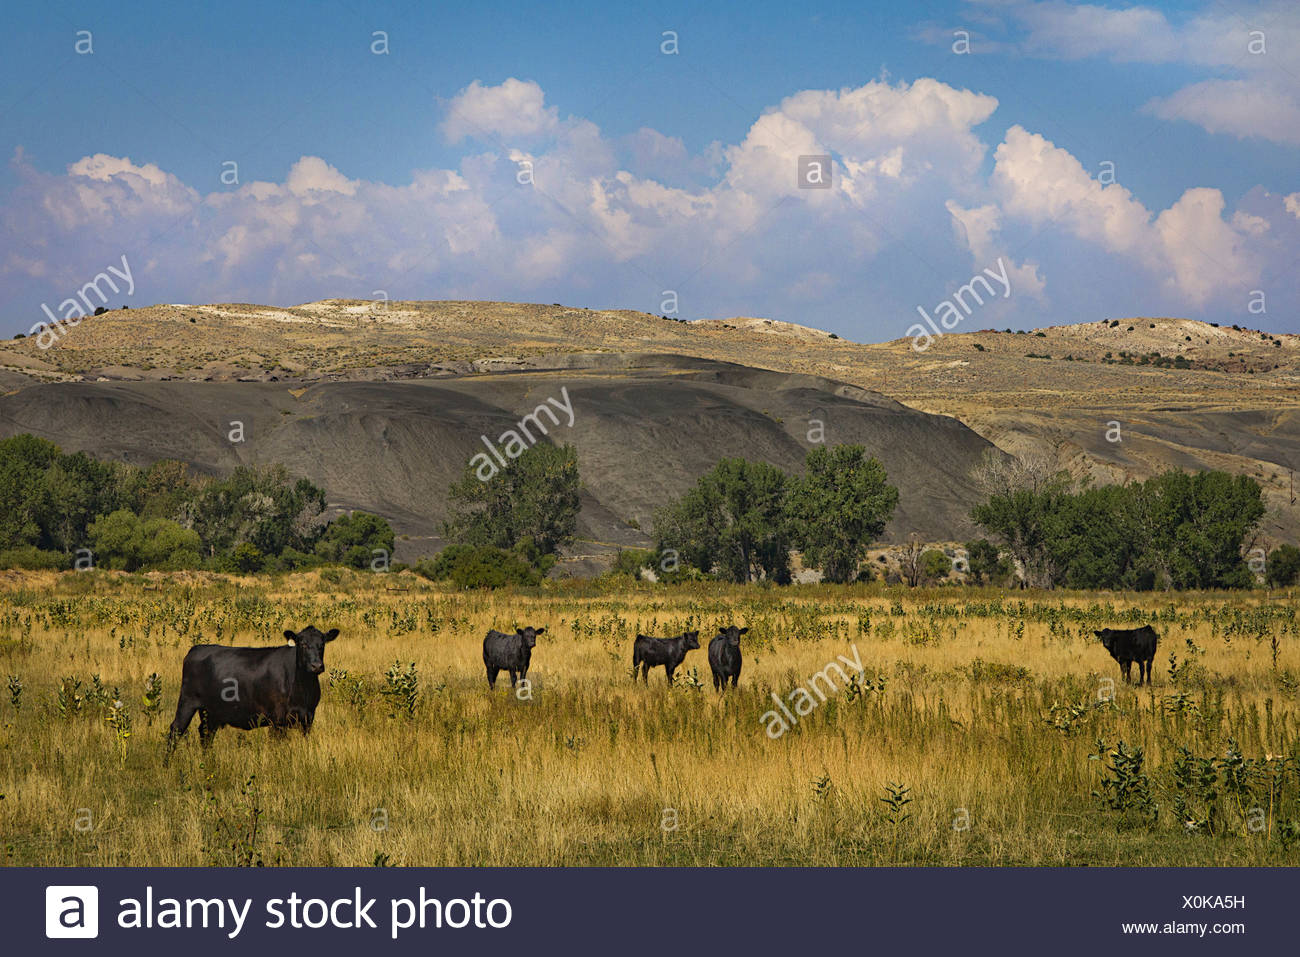 Cattle in field in Wyoming, USA Stock Photo